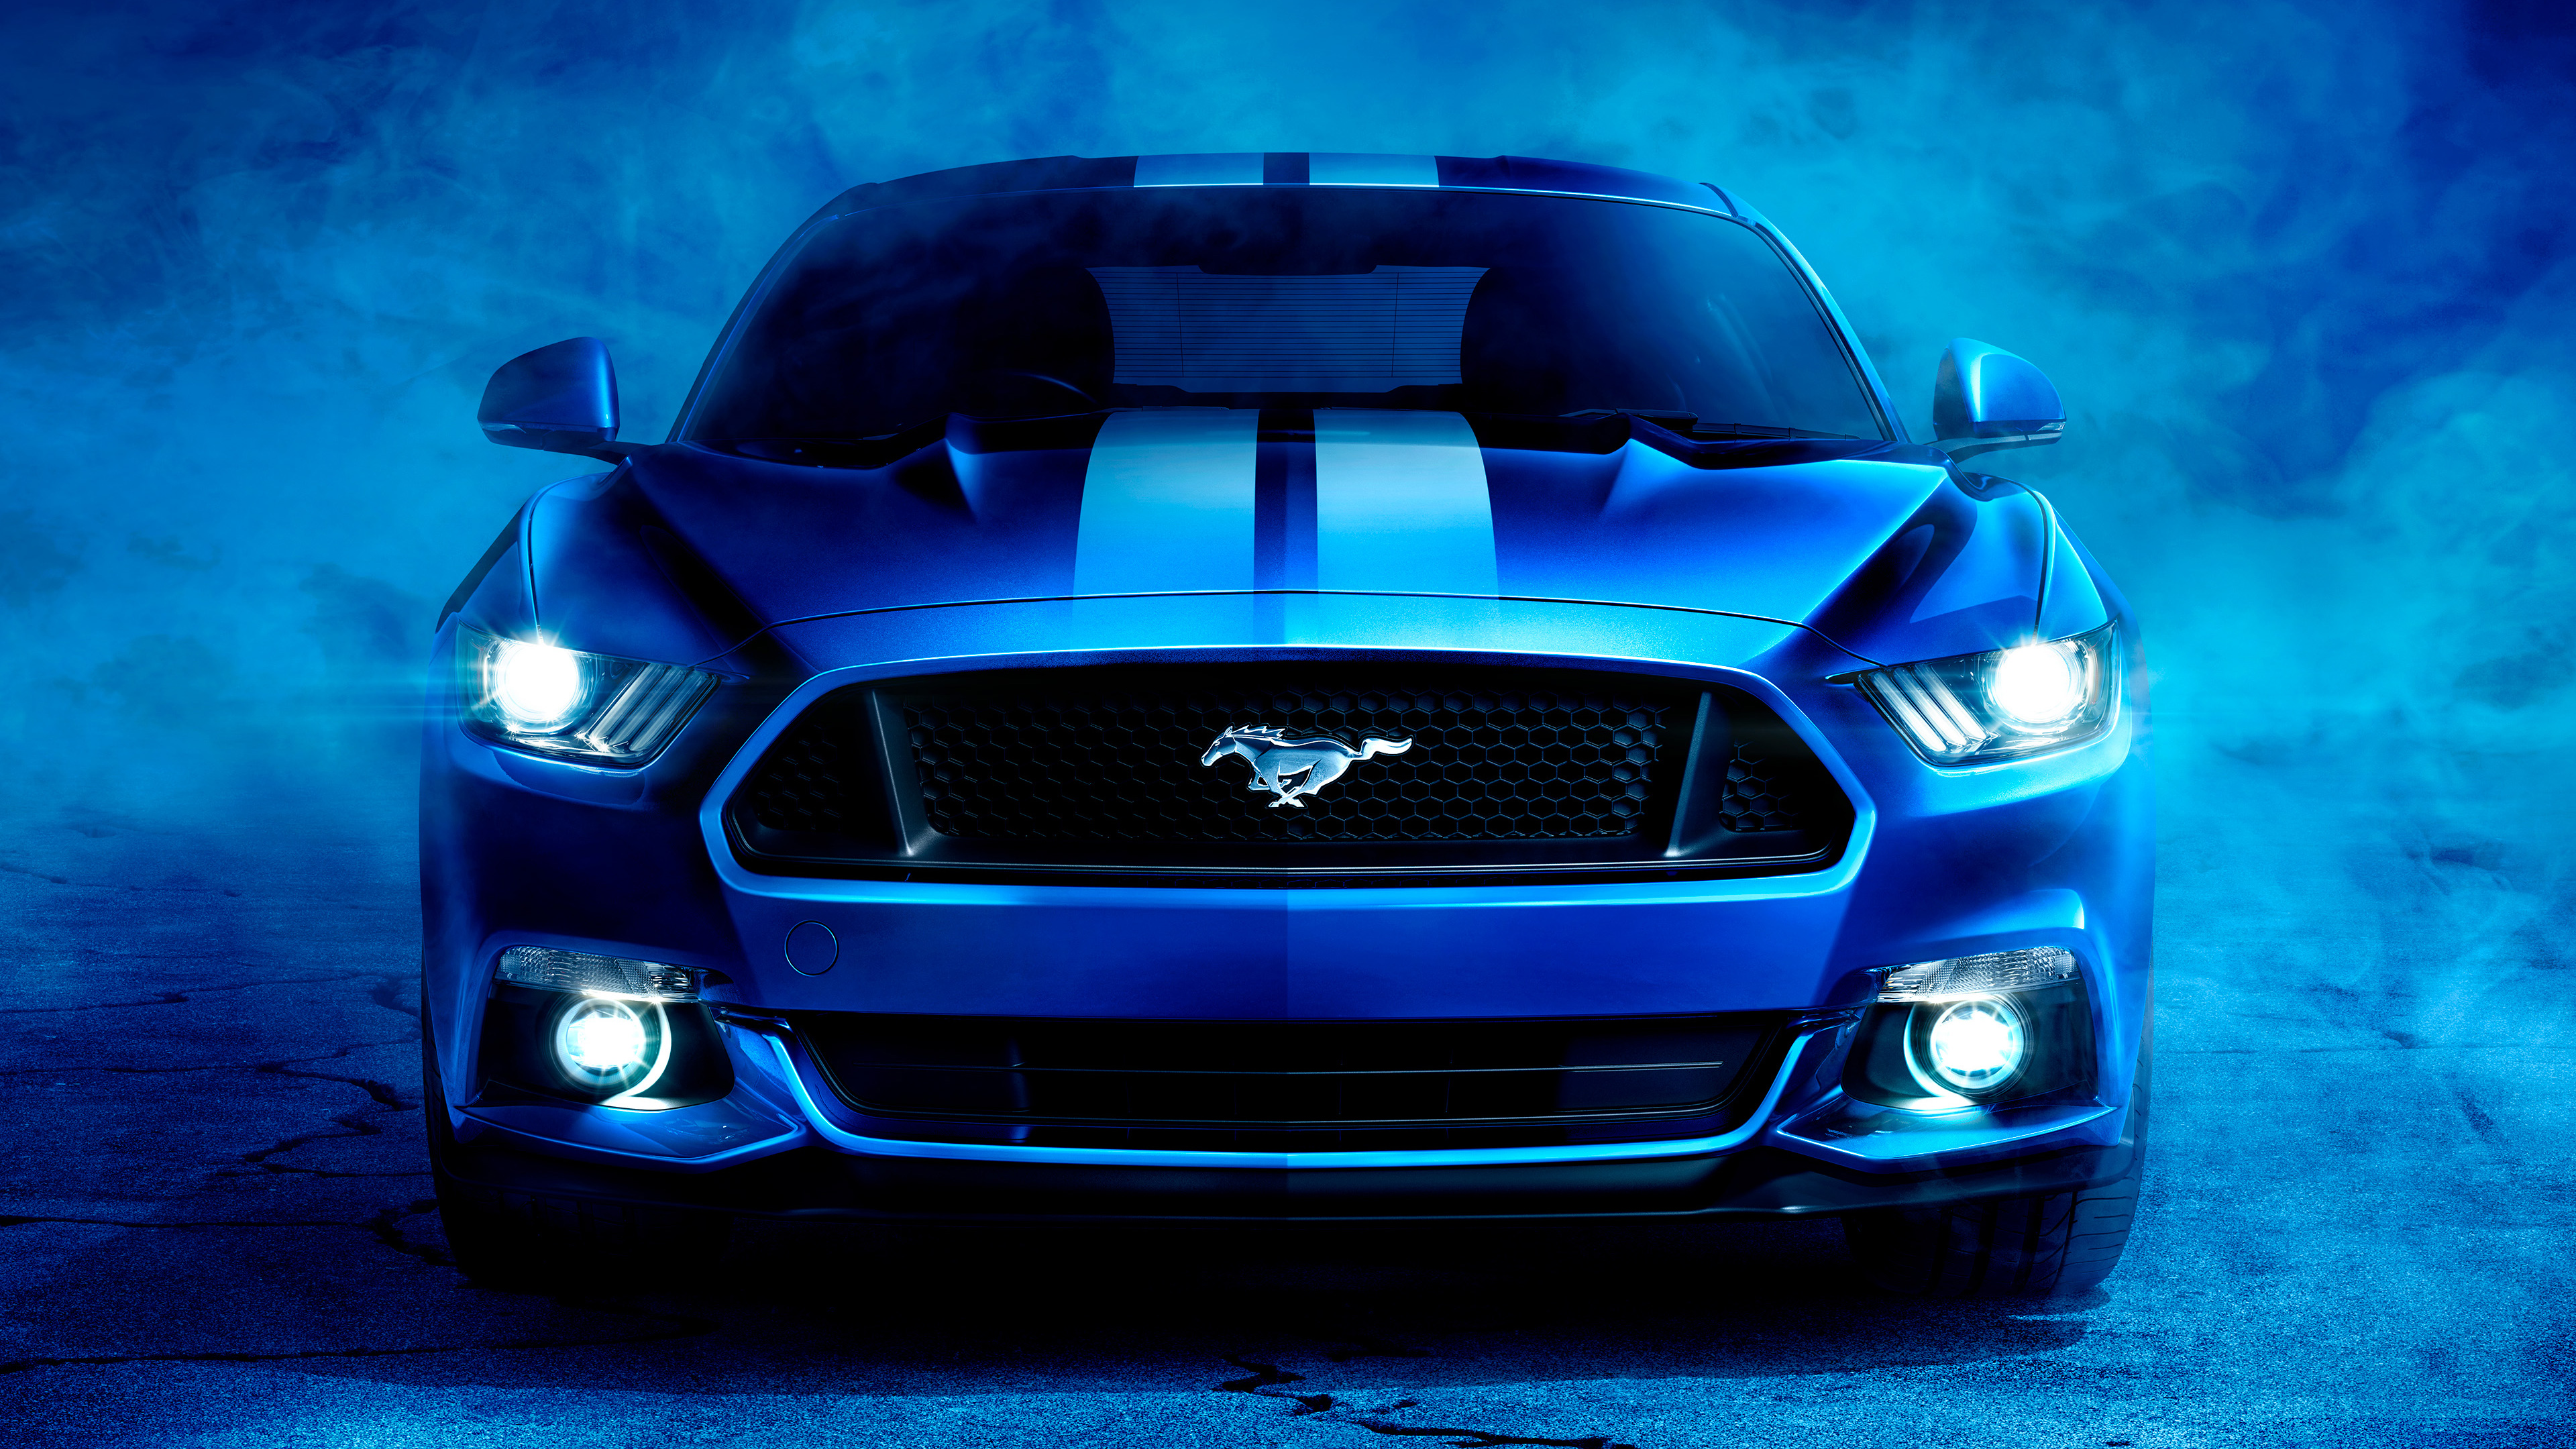 Ford Shelby Mustang 4K Wallpapers | HD Wallpapers